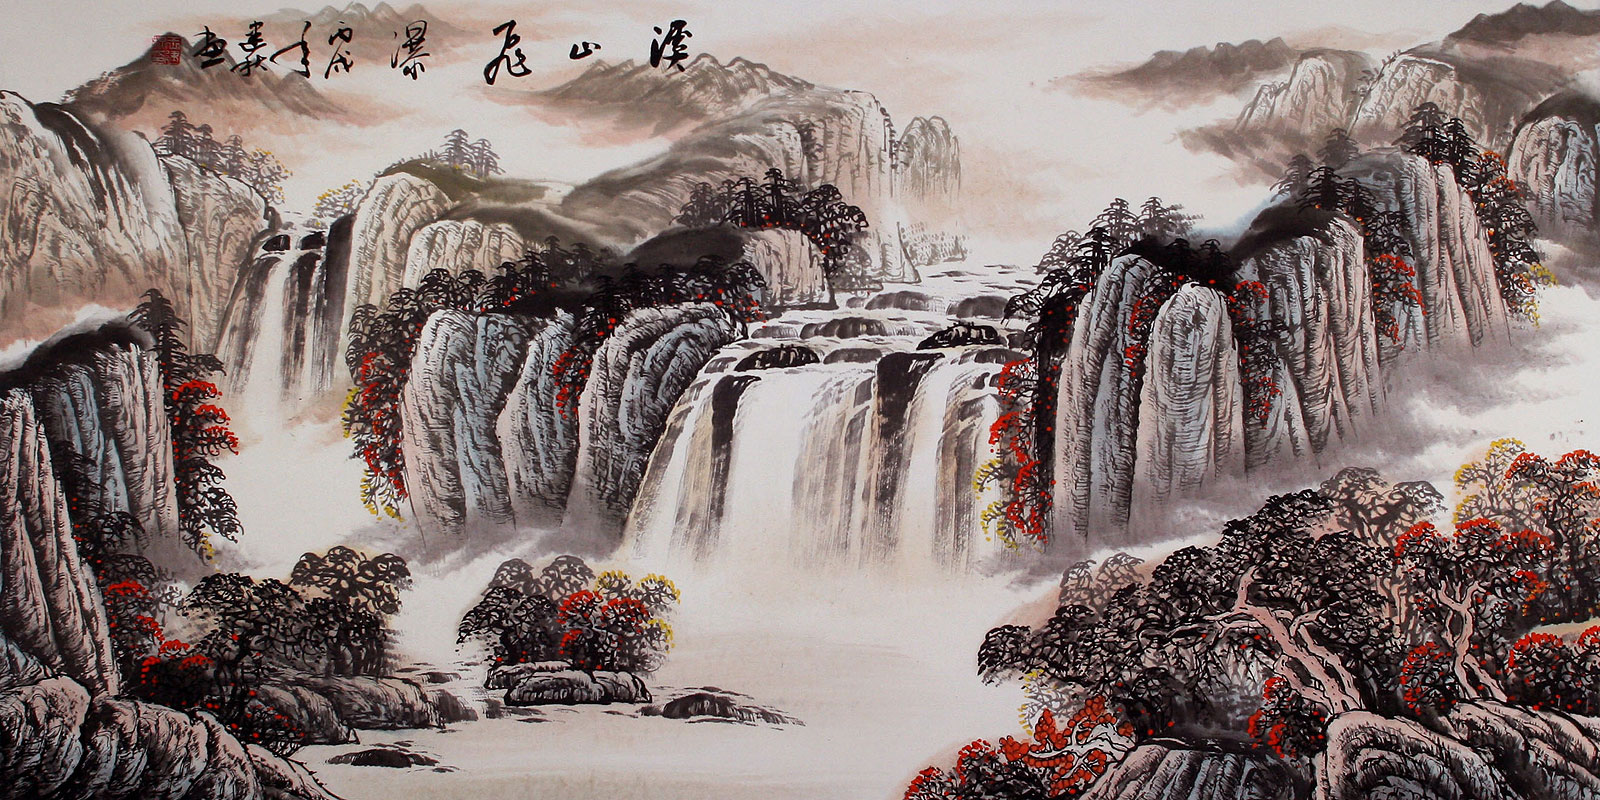 Creek Mountain Waterfall - Asian Art Landscape Painting